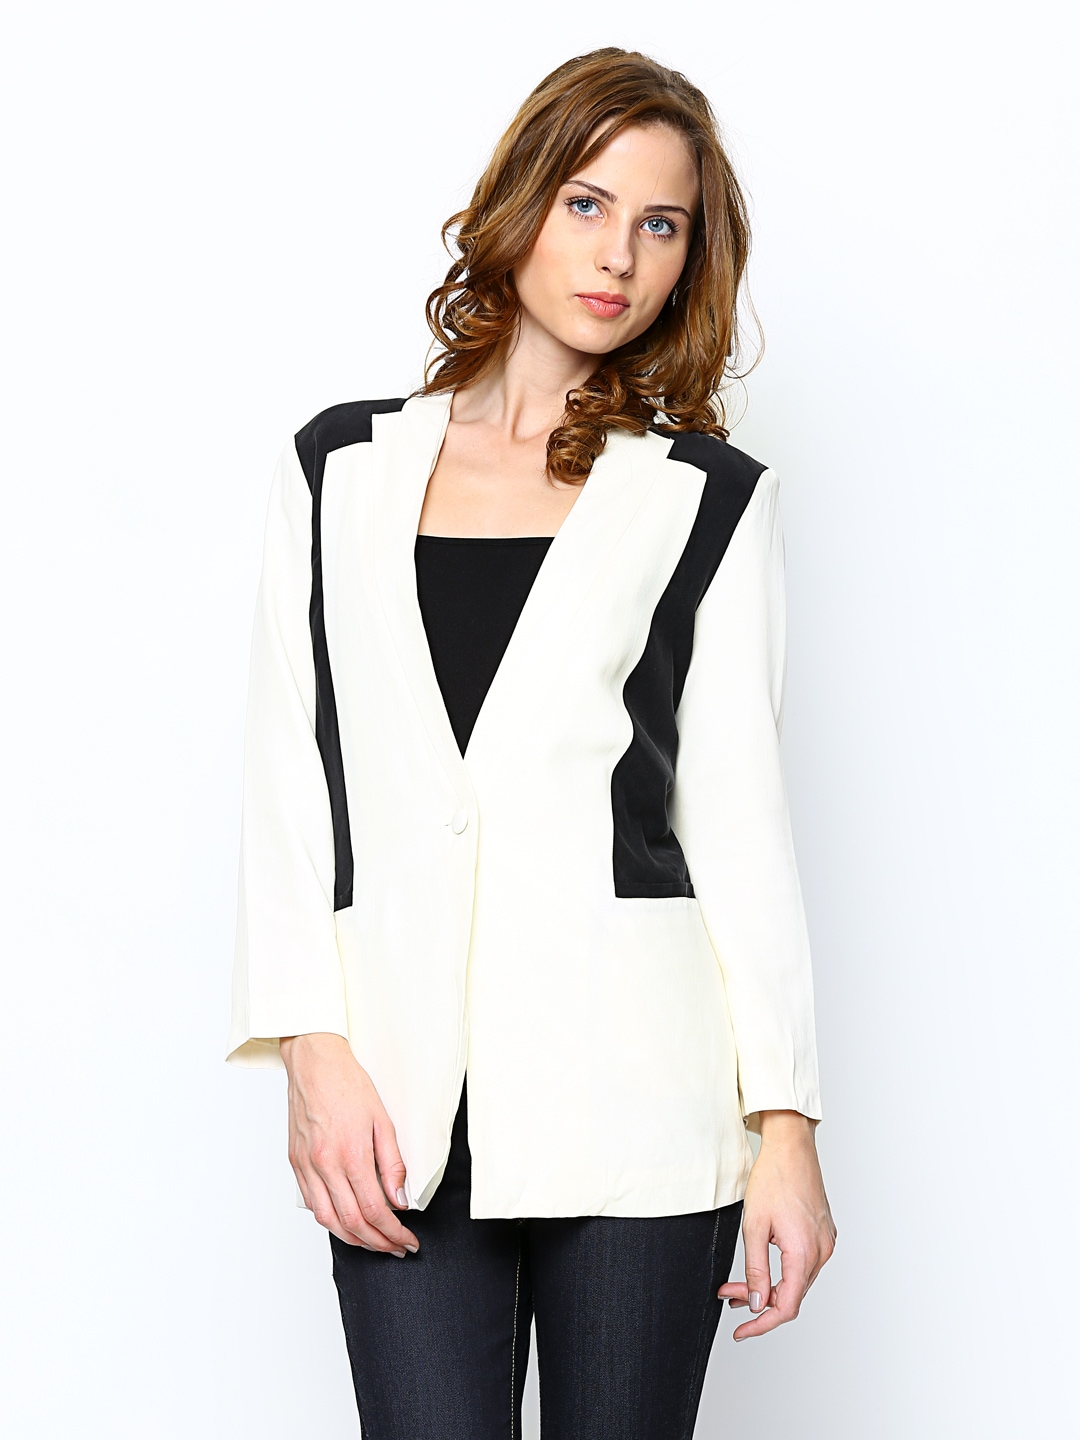 Find a Denim White Blazer for Women and even a Linen White Blazer for Women, at Macy's. Macy's Presents: The Edit - A curated mix of fashion and inspiration Check It Out Free Shipping with $49 purchase + Free Store Pickup.